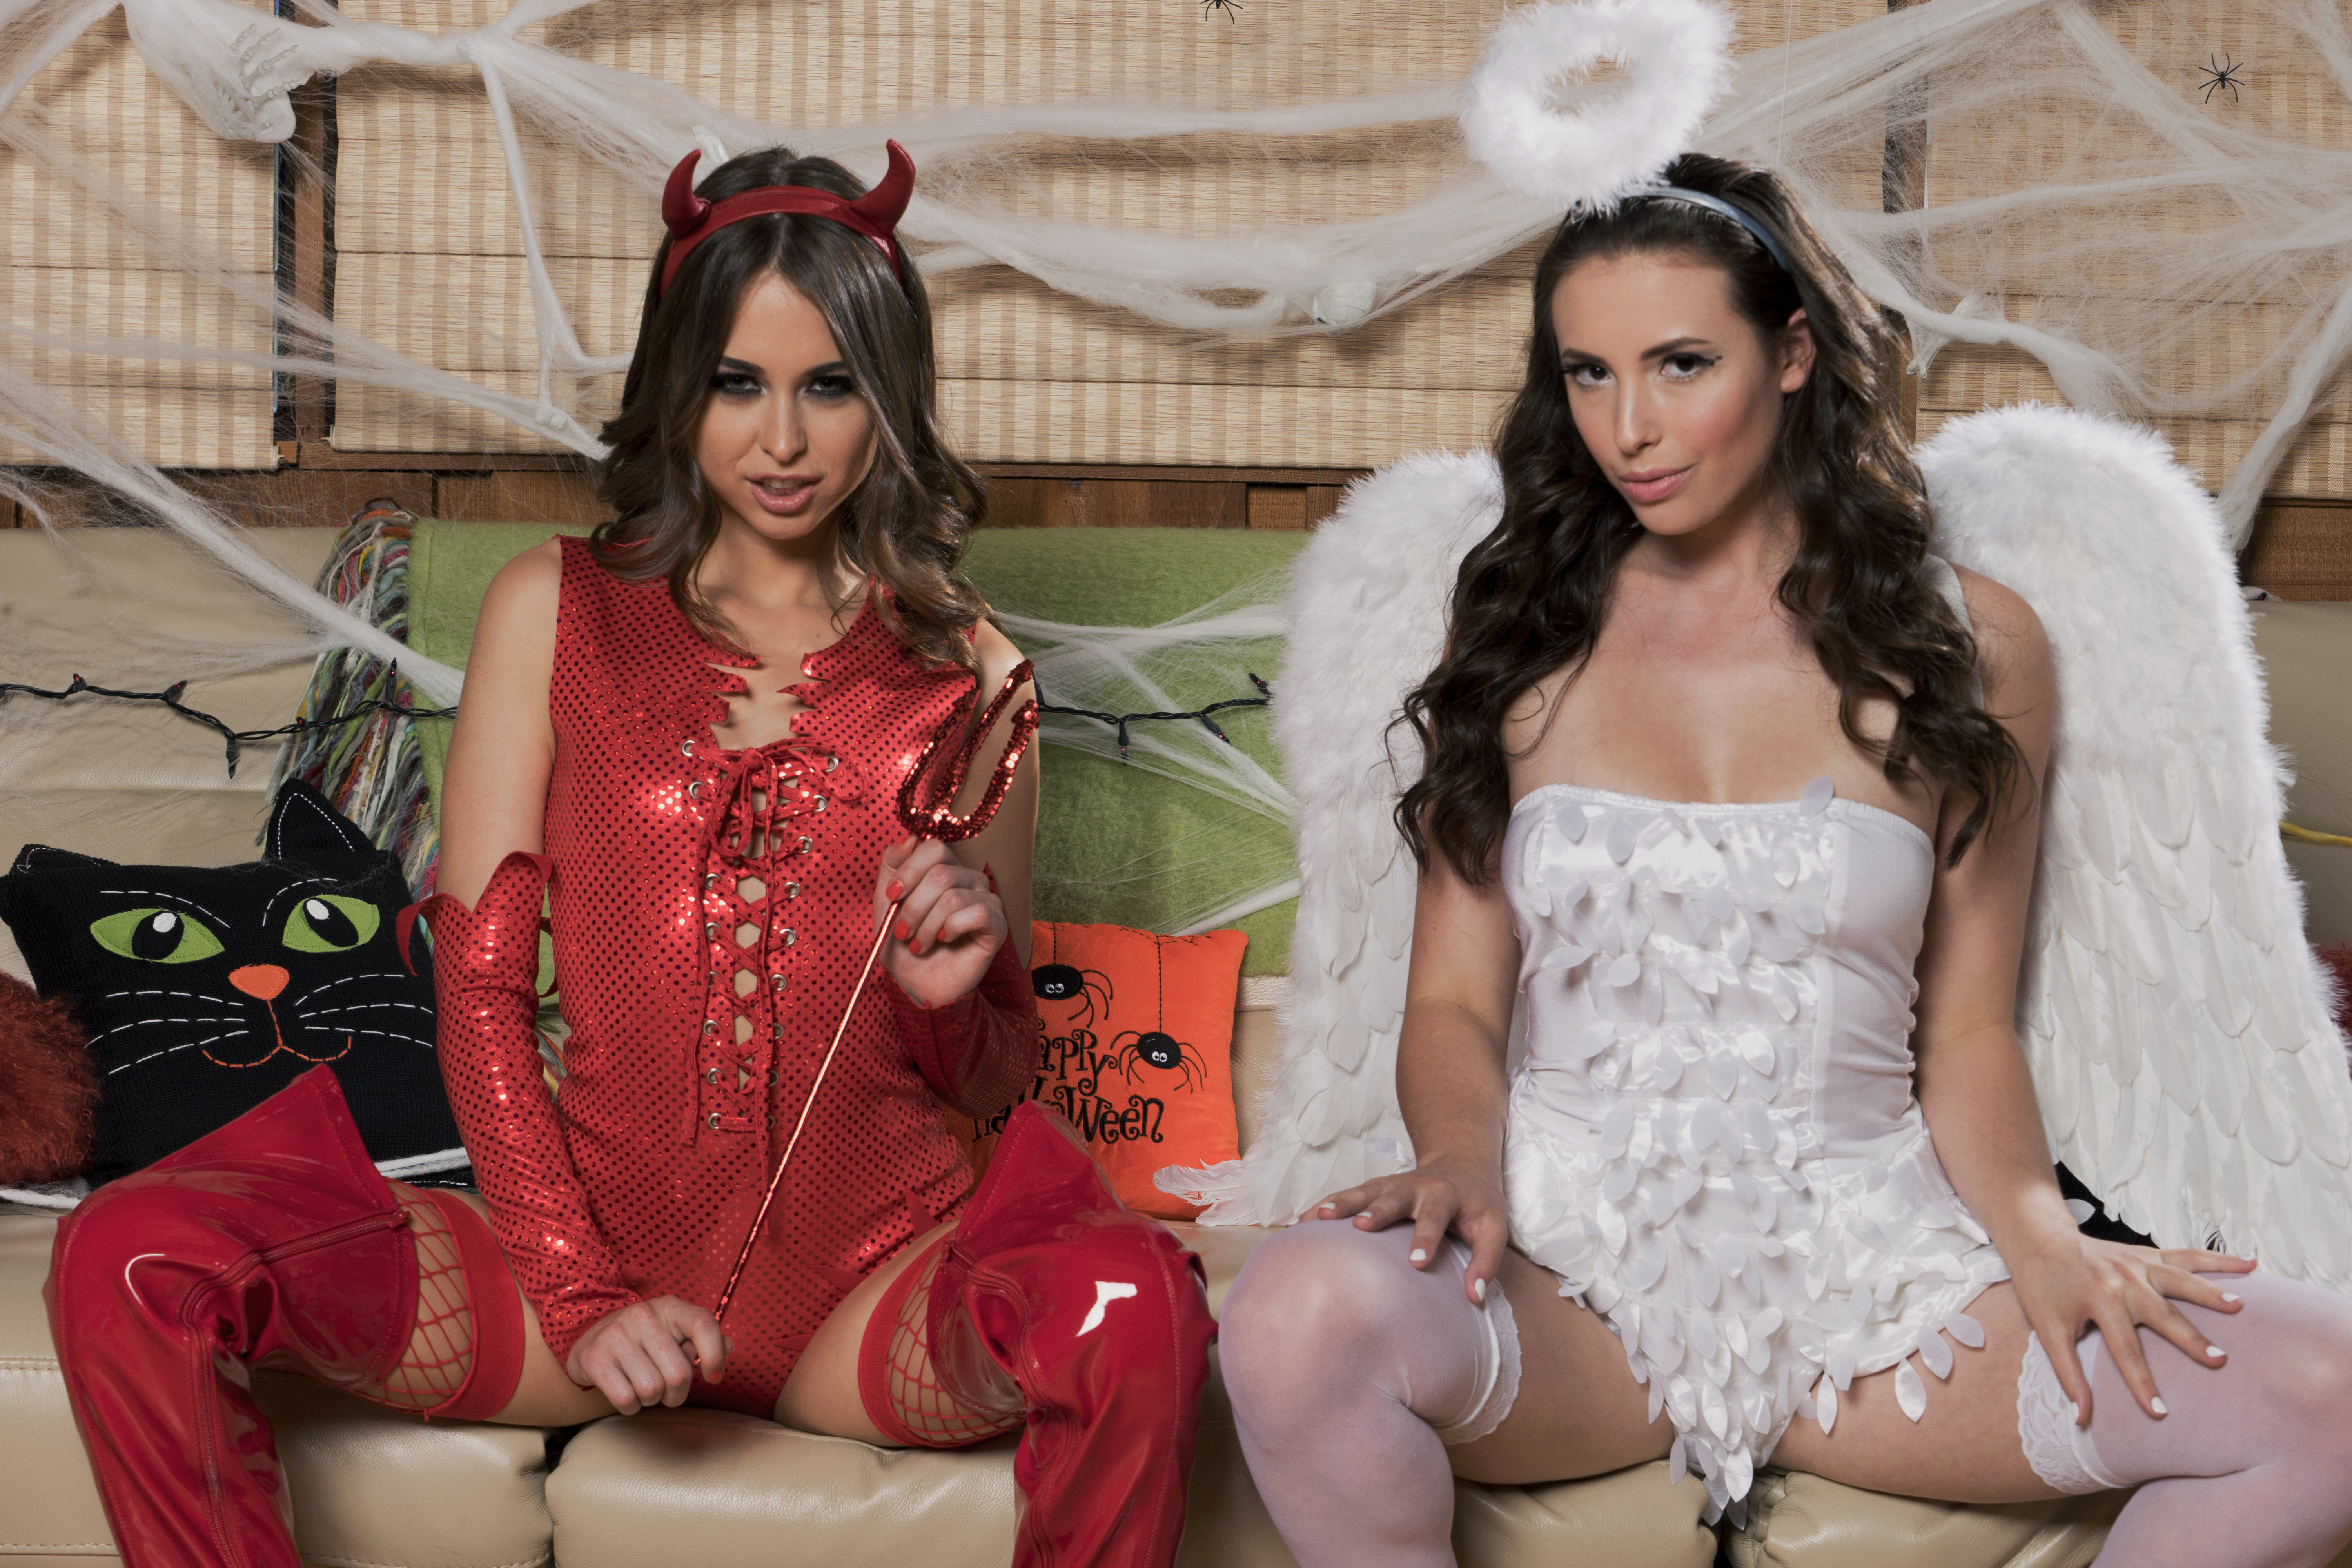 Riley Reid And Casey Calvert Sharing A Thick Black Manhood On Halloween 608135 Pornstars In Their Trick Or Treat Costumes Getting Penetrated By Strong African Man